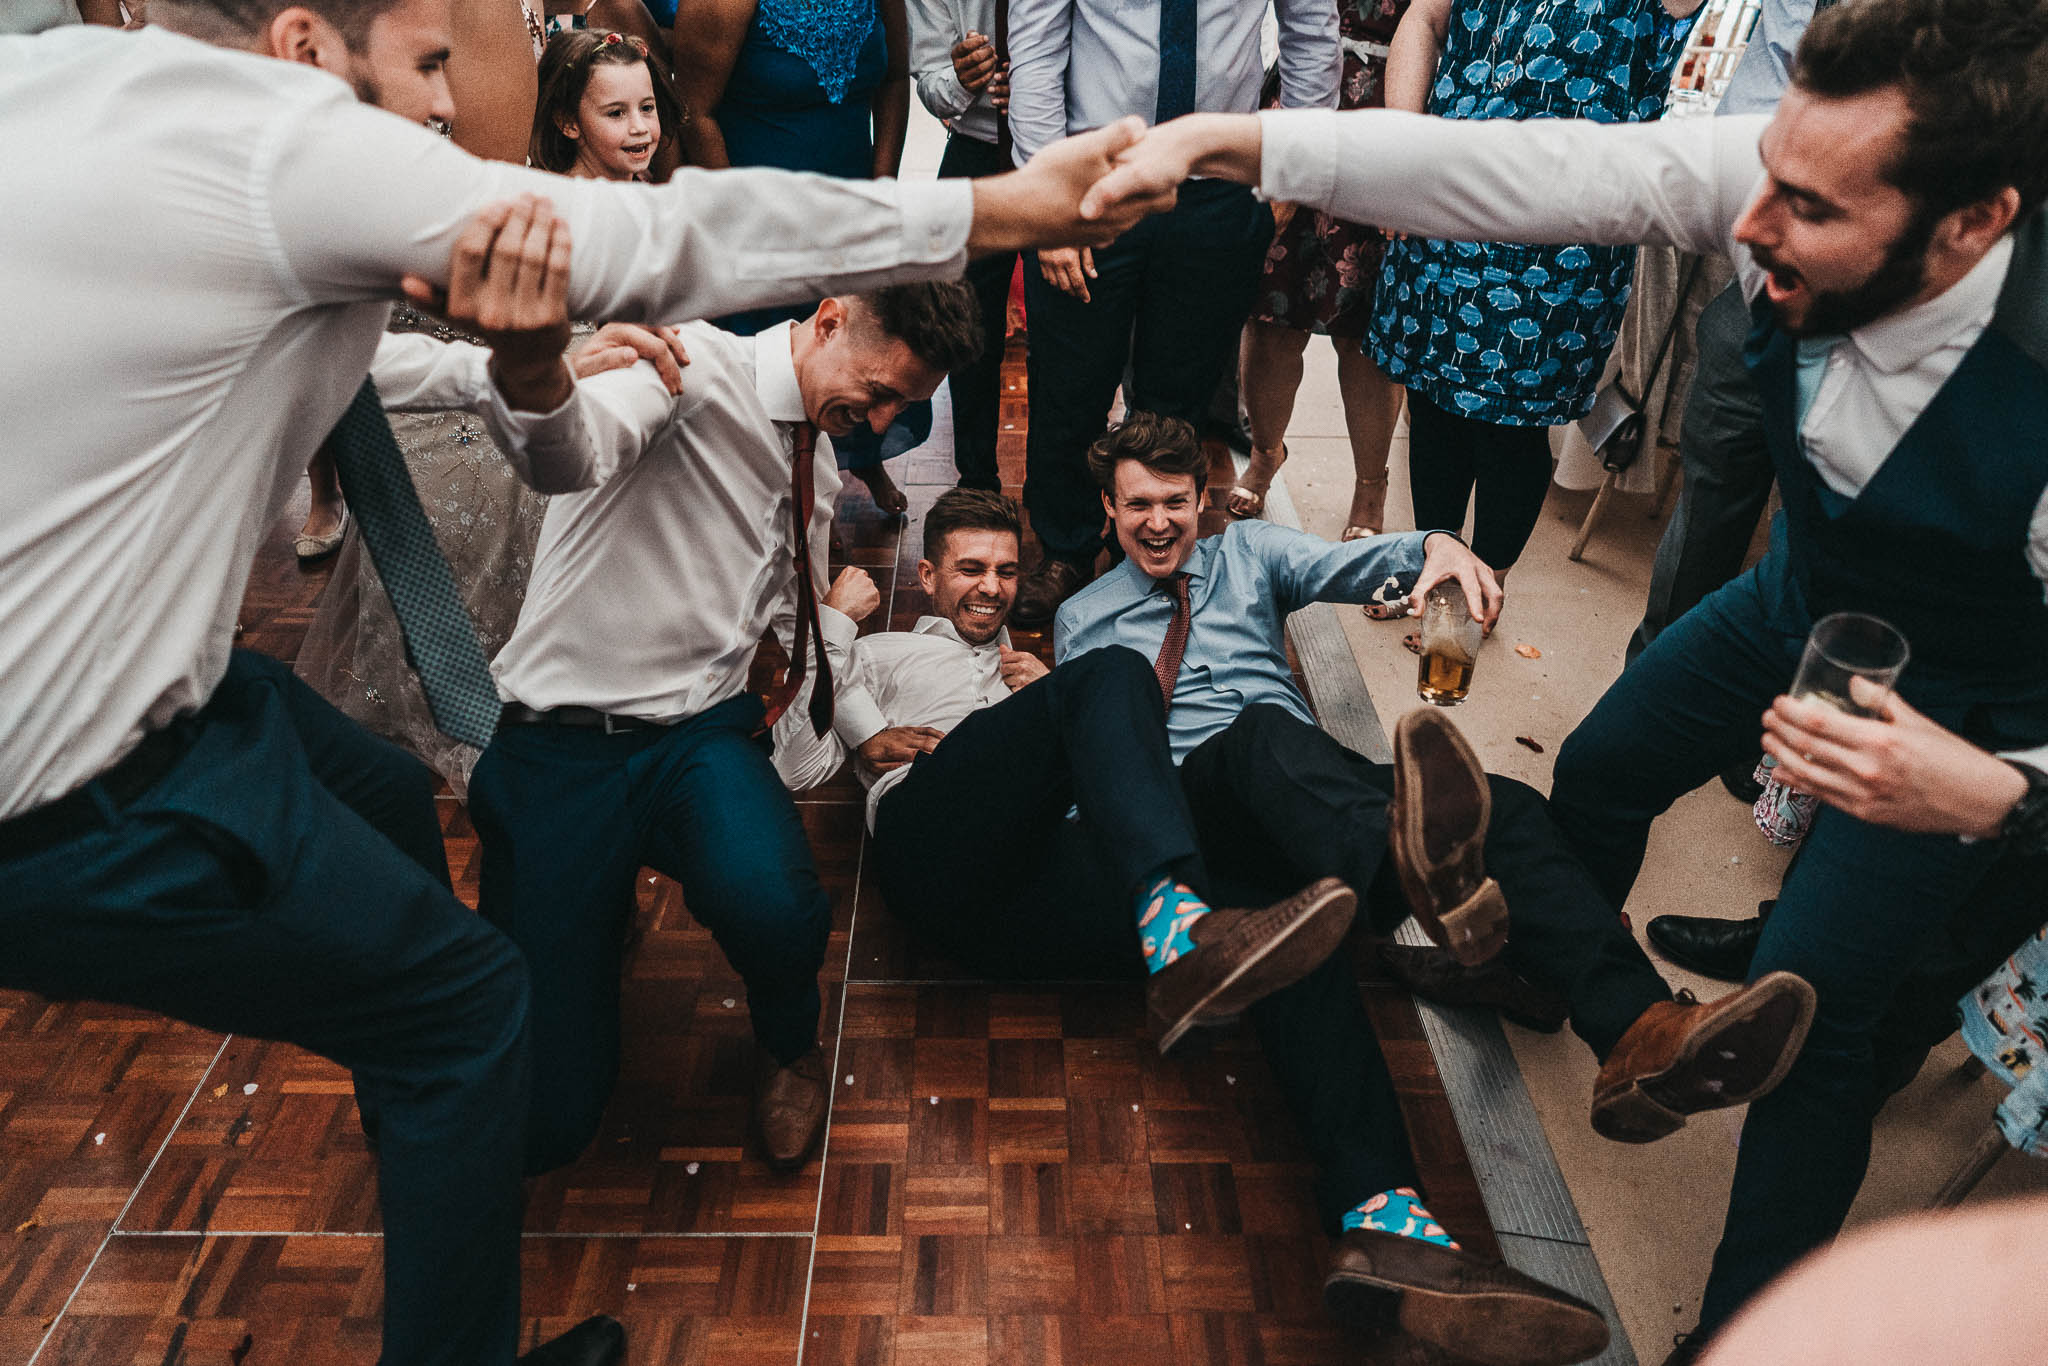 funny picture of people falling over on dancefloor at a wedding